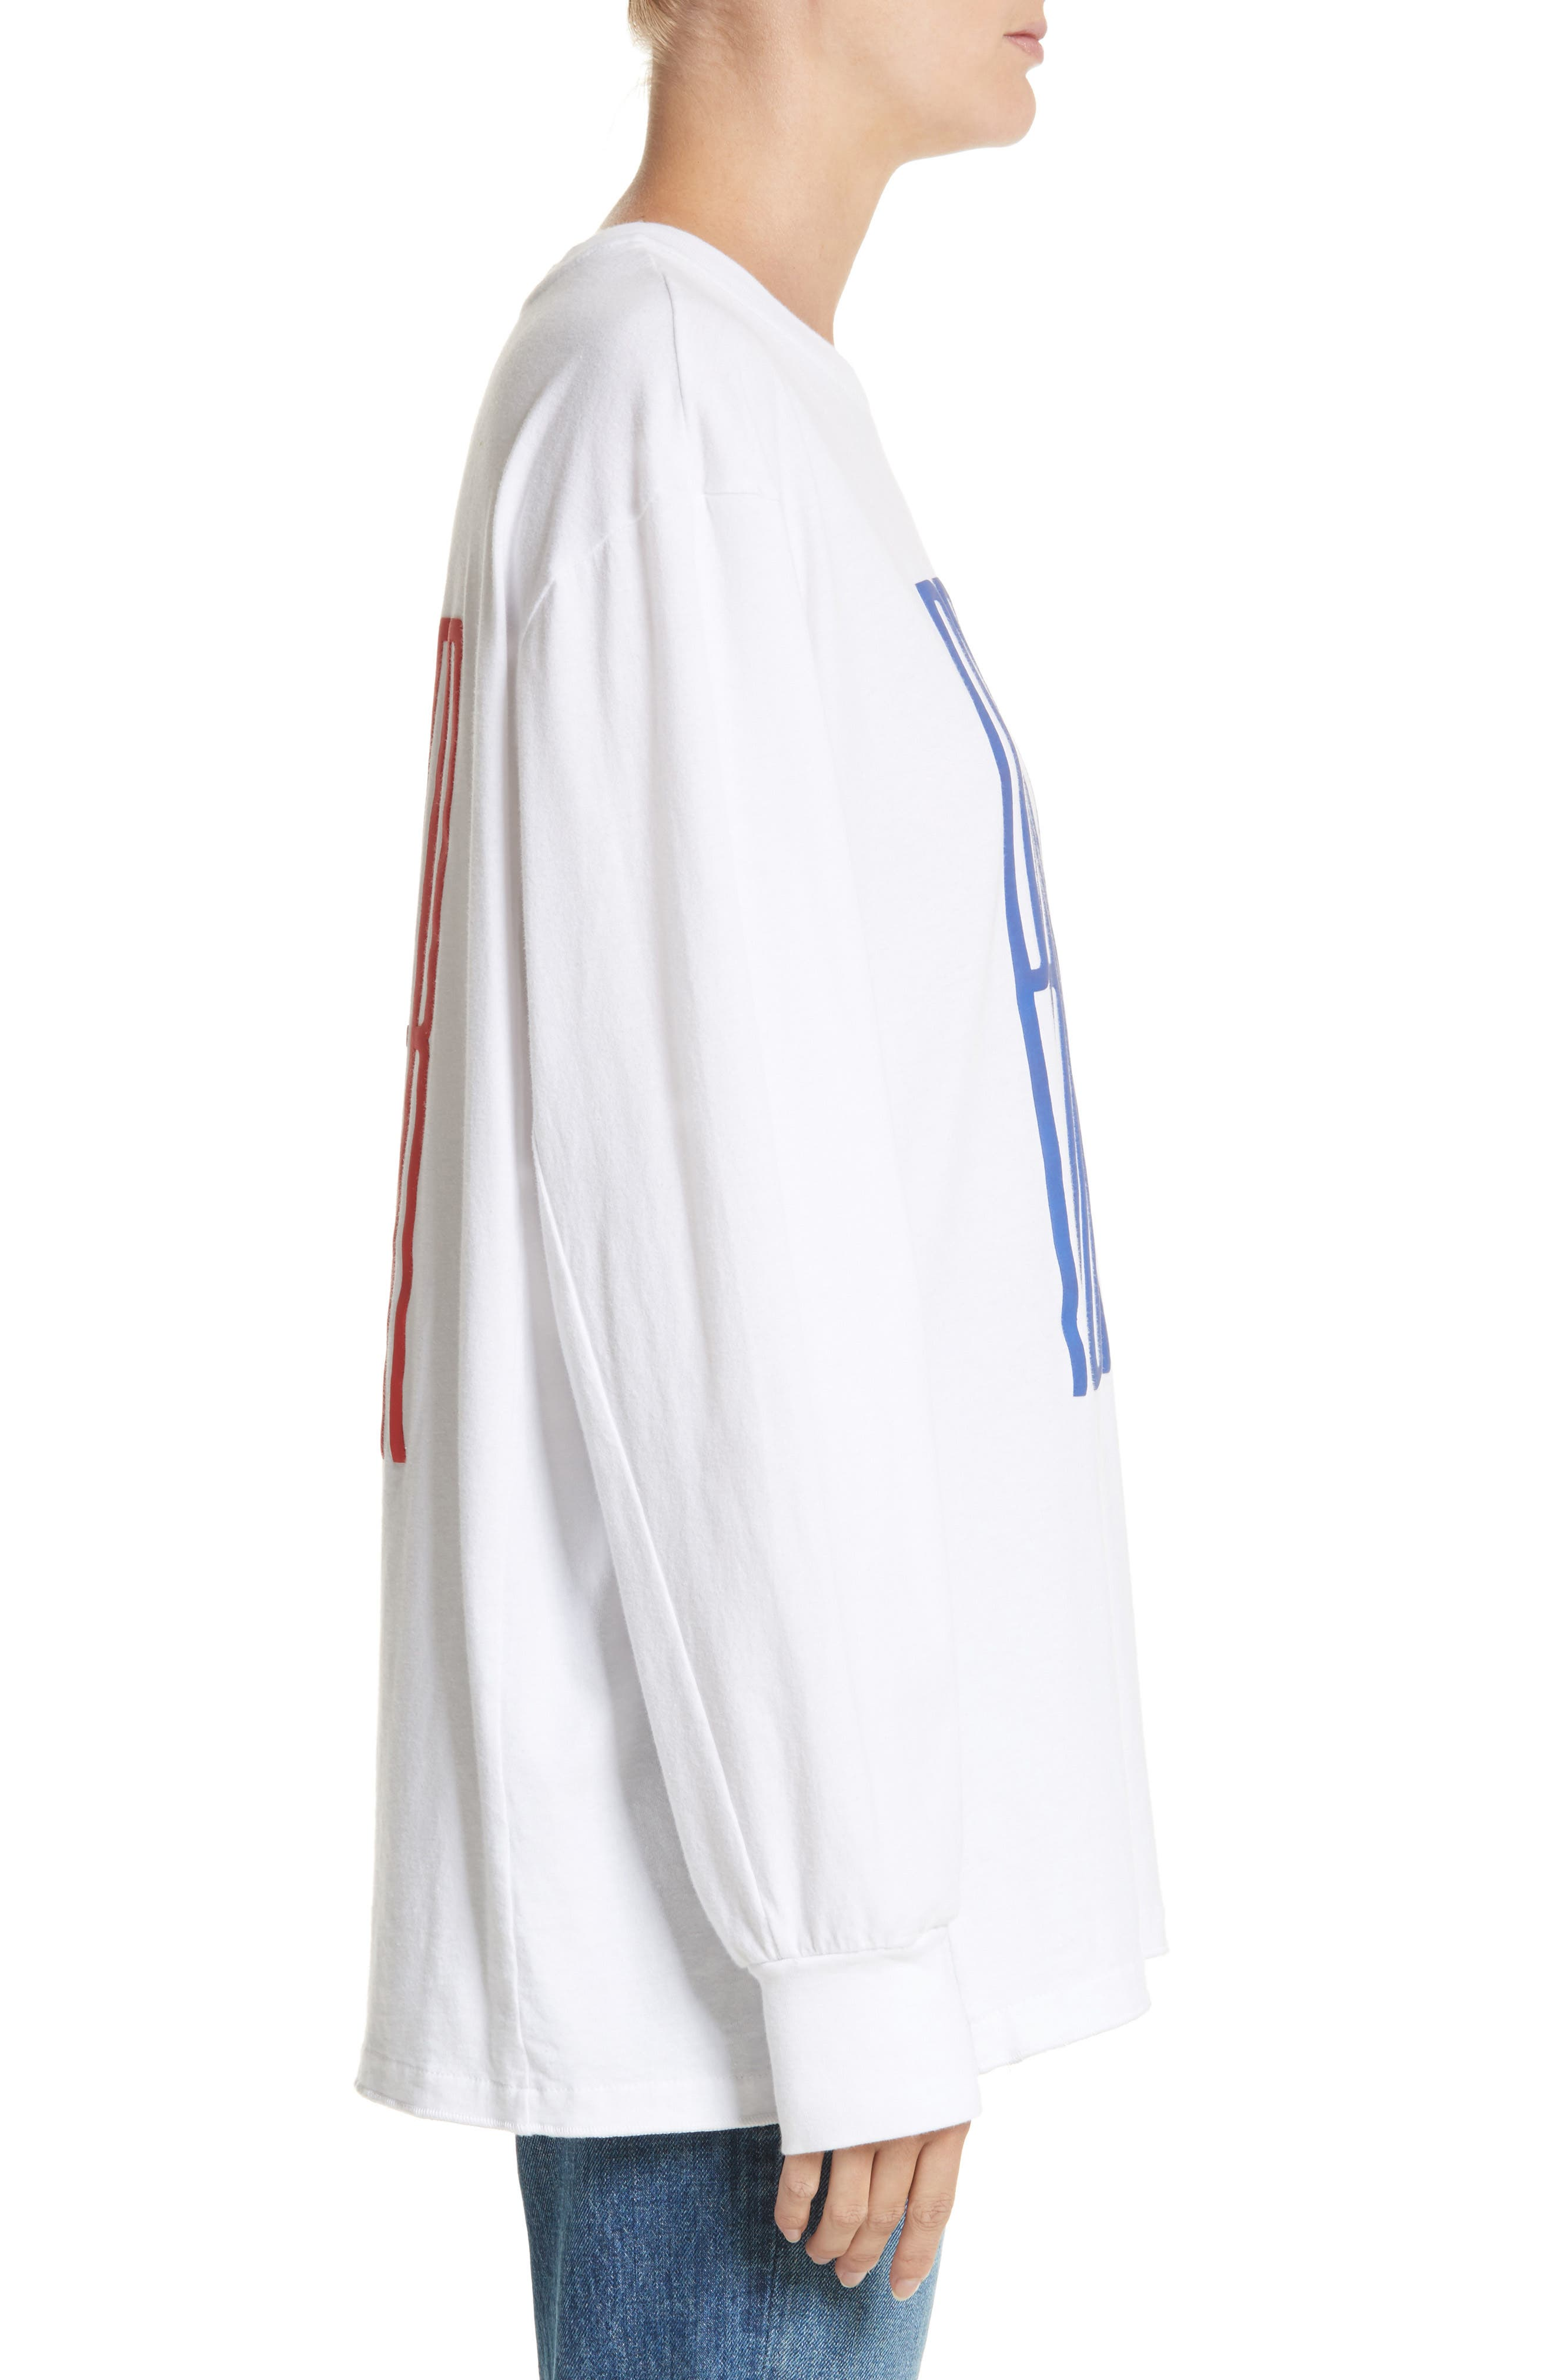 PSWL Graphic Jersey Tee,                             Alternate thumbnail 3, color,                             Blue Proenza Schouler